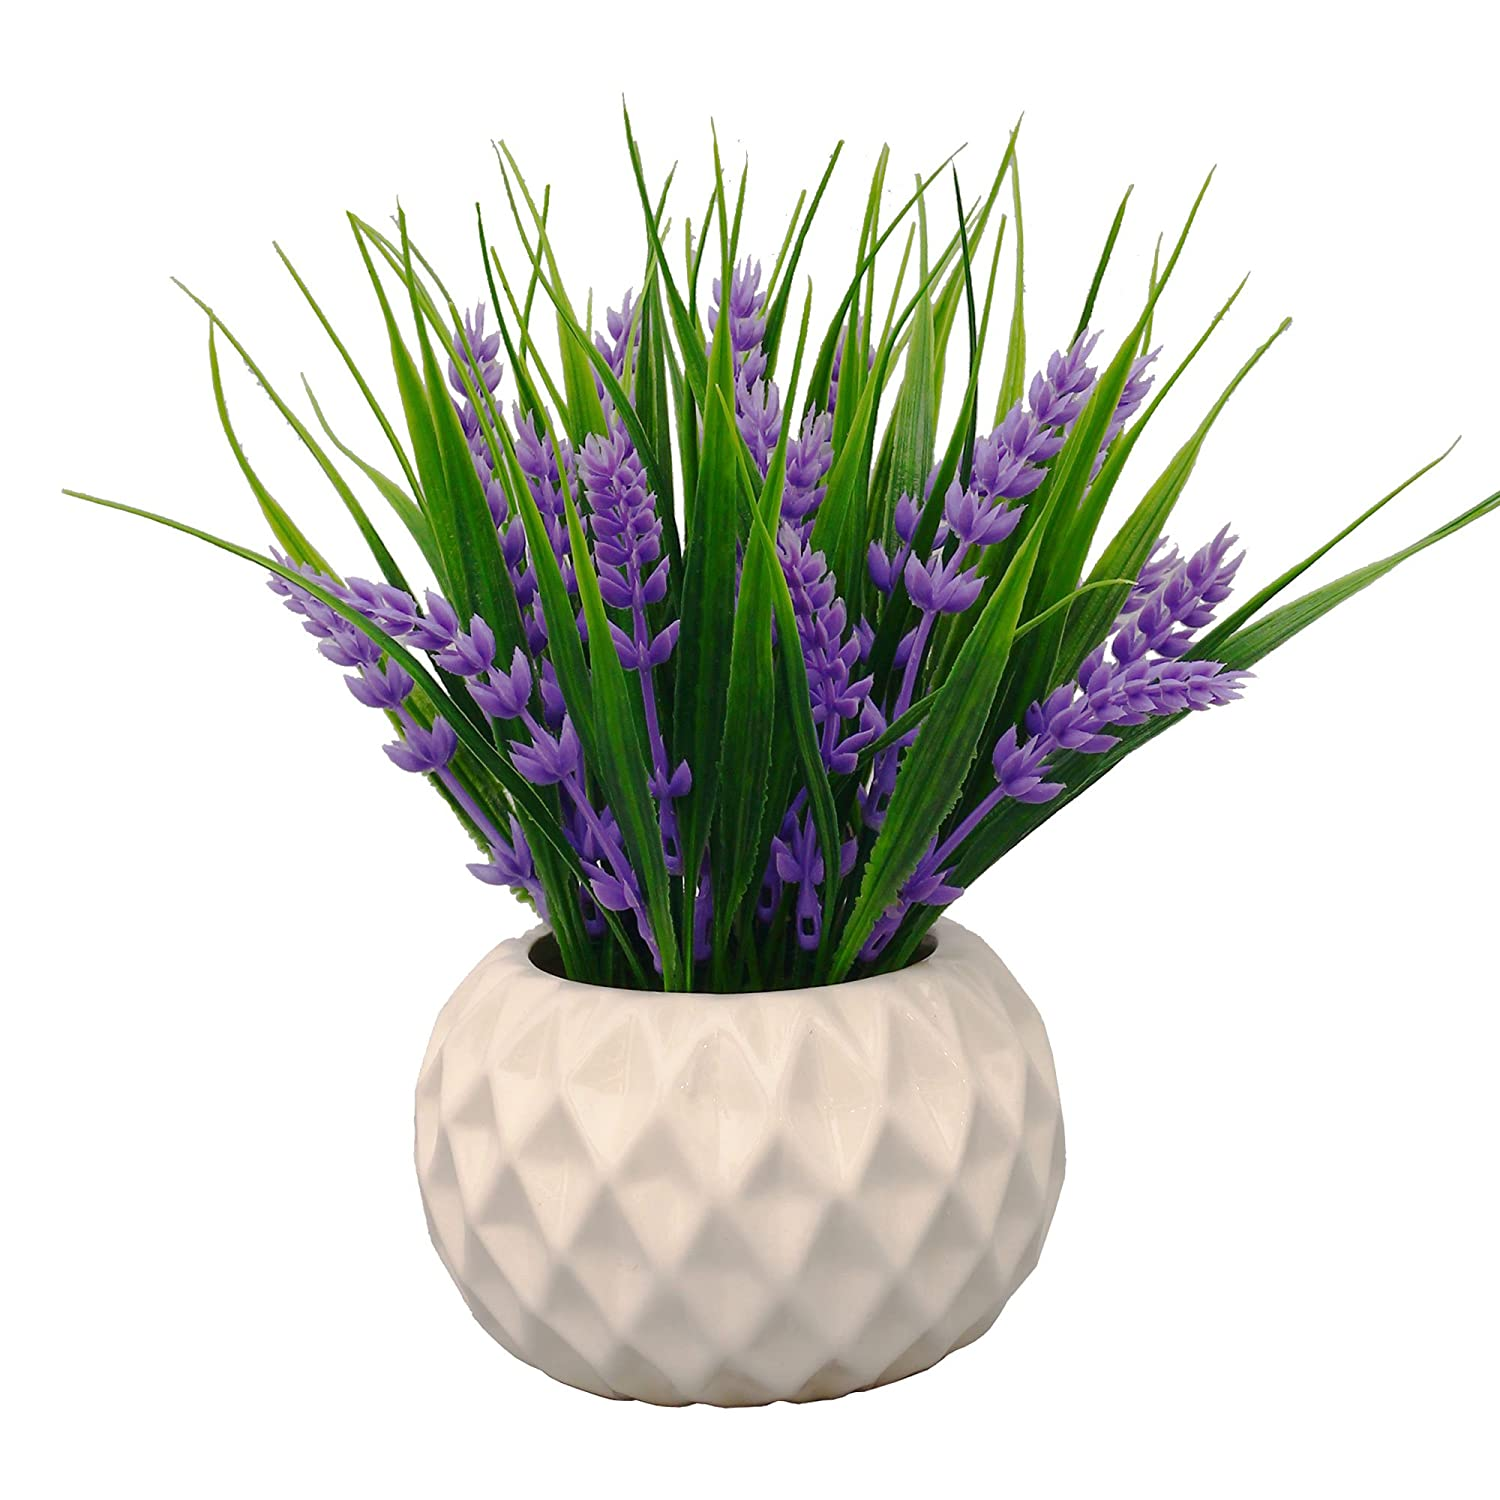 VGIA Modern Artificial Potted Plant for Home Decor Lavender Flowers and Grass Arrangements Tabletop Decoration